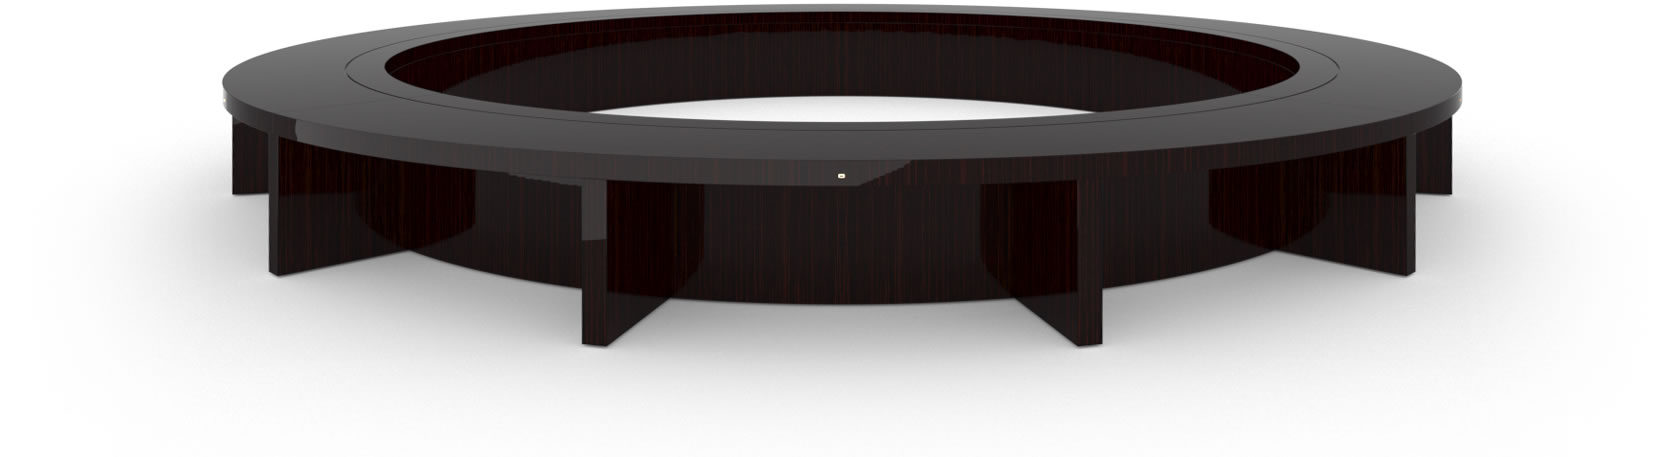 FELIX SCHWAKE CONFERENCE TABLE VI Ring Structure High Gloss Makassar Ebony Black Precious Wood Mirror Polish Piano Finish Nobel Oval Boardroom System Huge